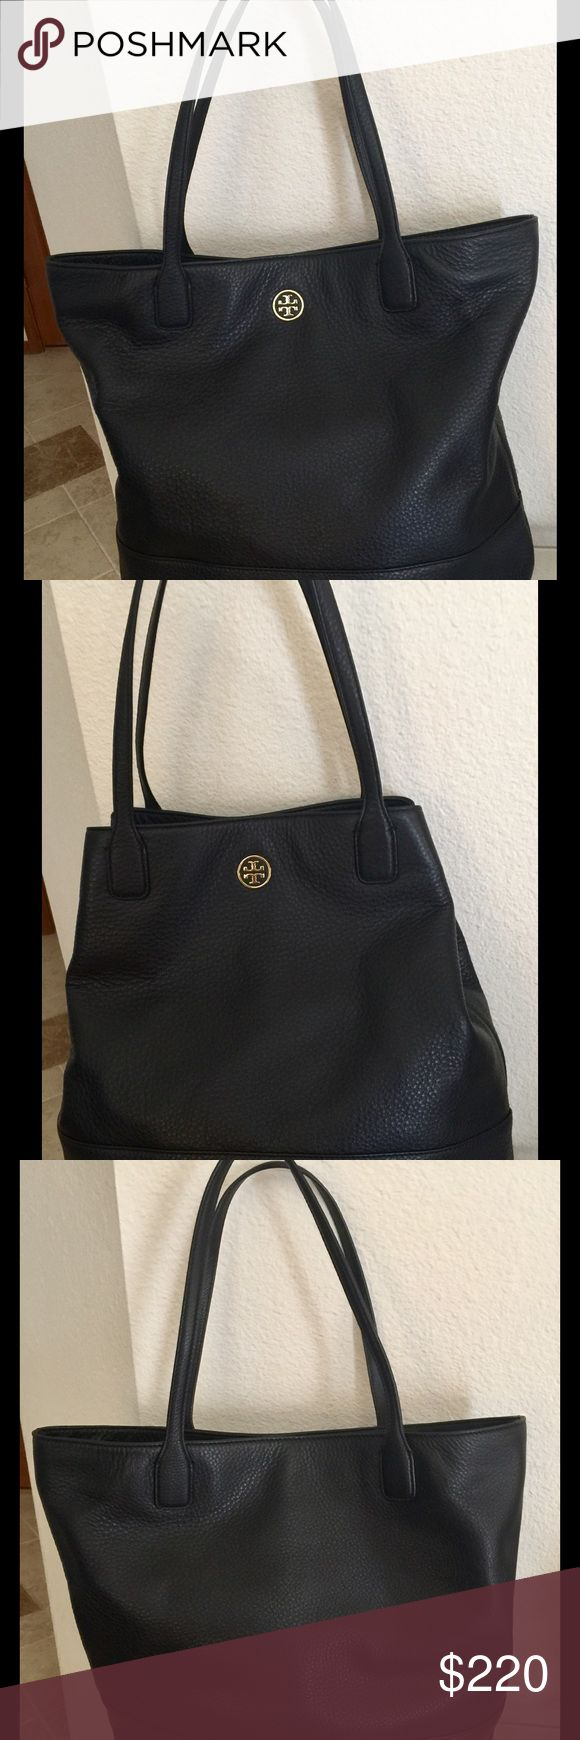 Tory Burch Michelle Tote, Black Leather - PERFECT! -Very roomy & versatile tote.  -Made of soft pebble leather -Front exterior has goldtone Tory Burch logo -Inside lining is black Tory Burch logo sateen -Interior, one zip pocket on the back with a goldtone metal zipper and Tory Burch nameplate on the front -Interior front has 3 slip pockets with the top pocket having a goldtone metal snap closure. -Goldtone magnetic top closure. -Hook and D-ring closure to further close the top.  -There is…